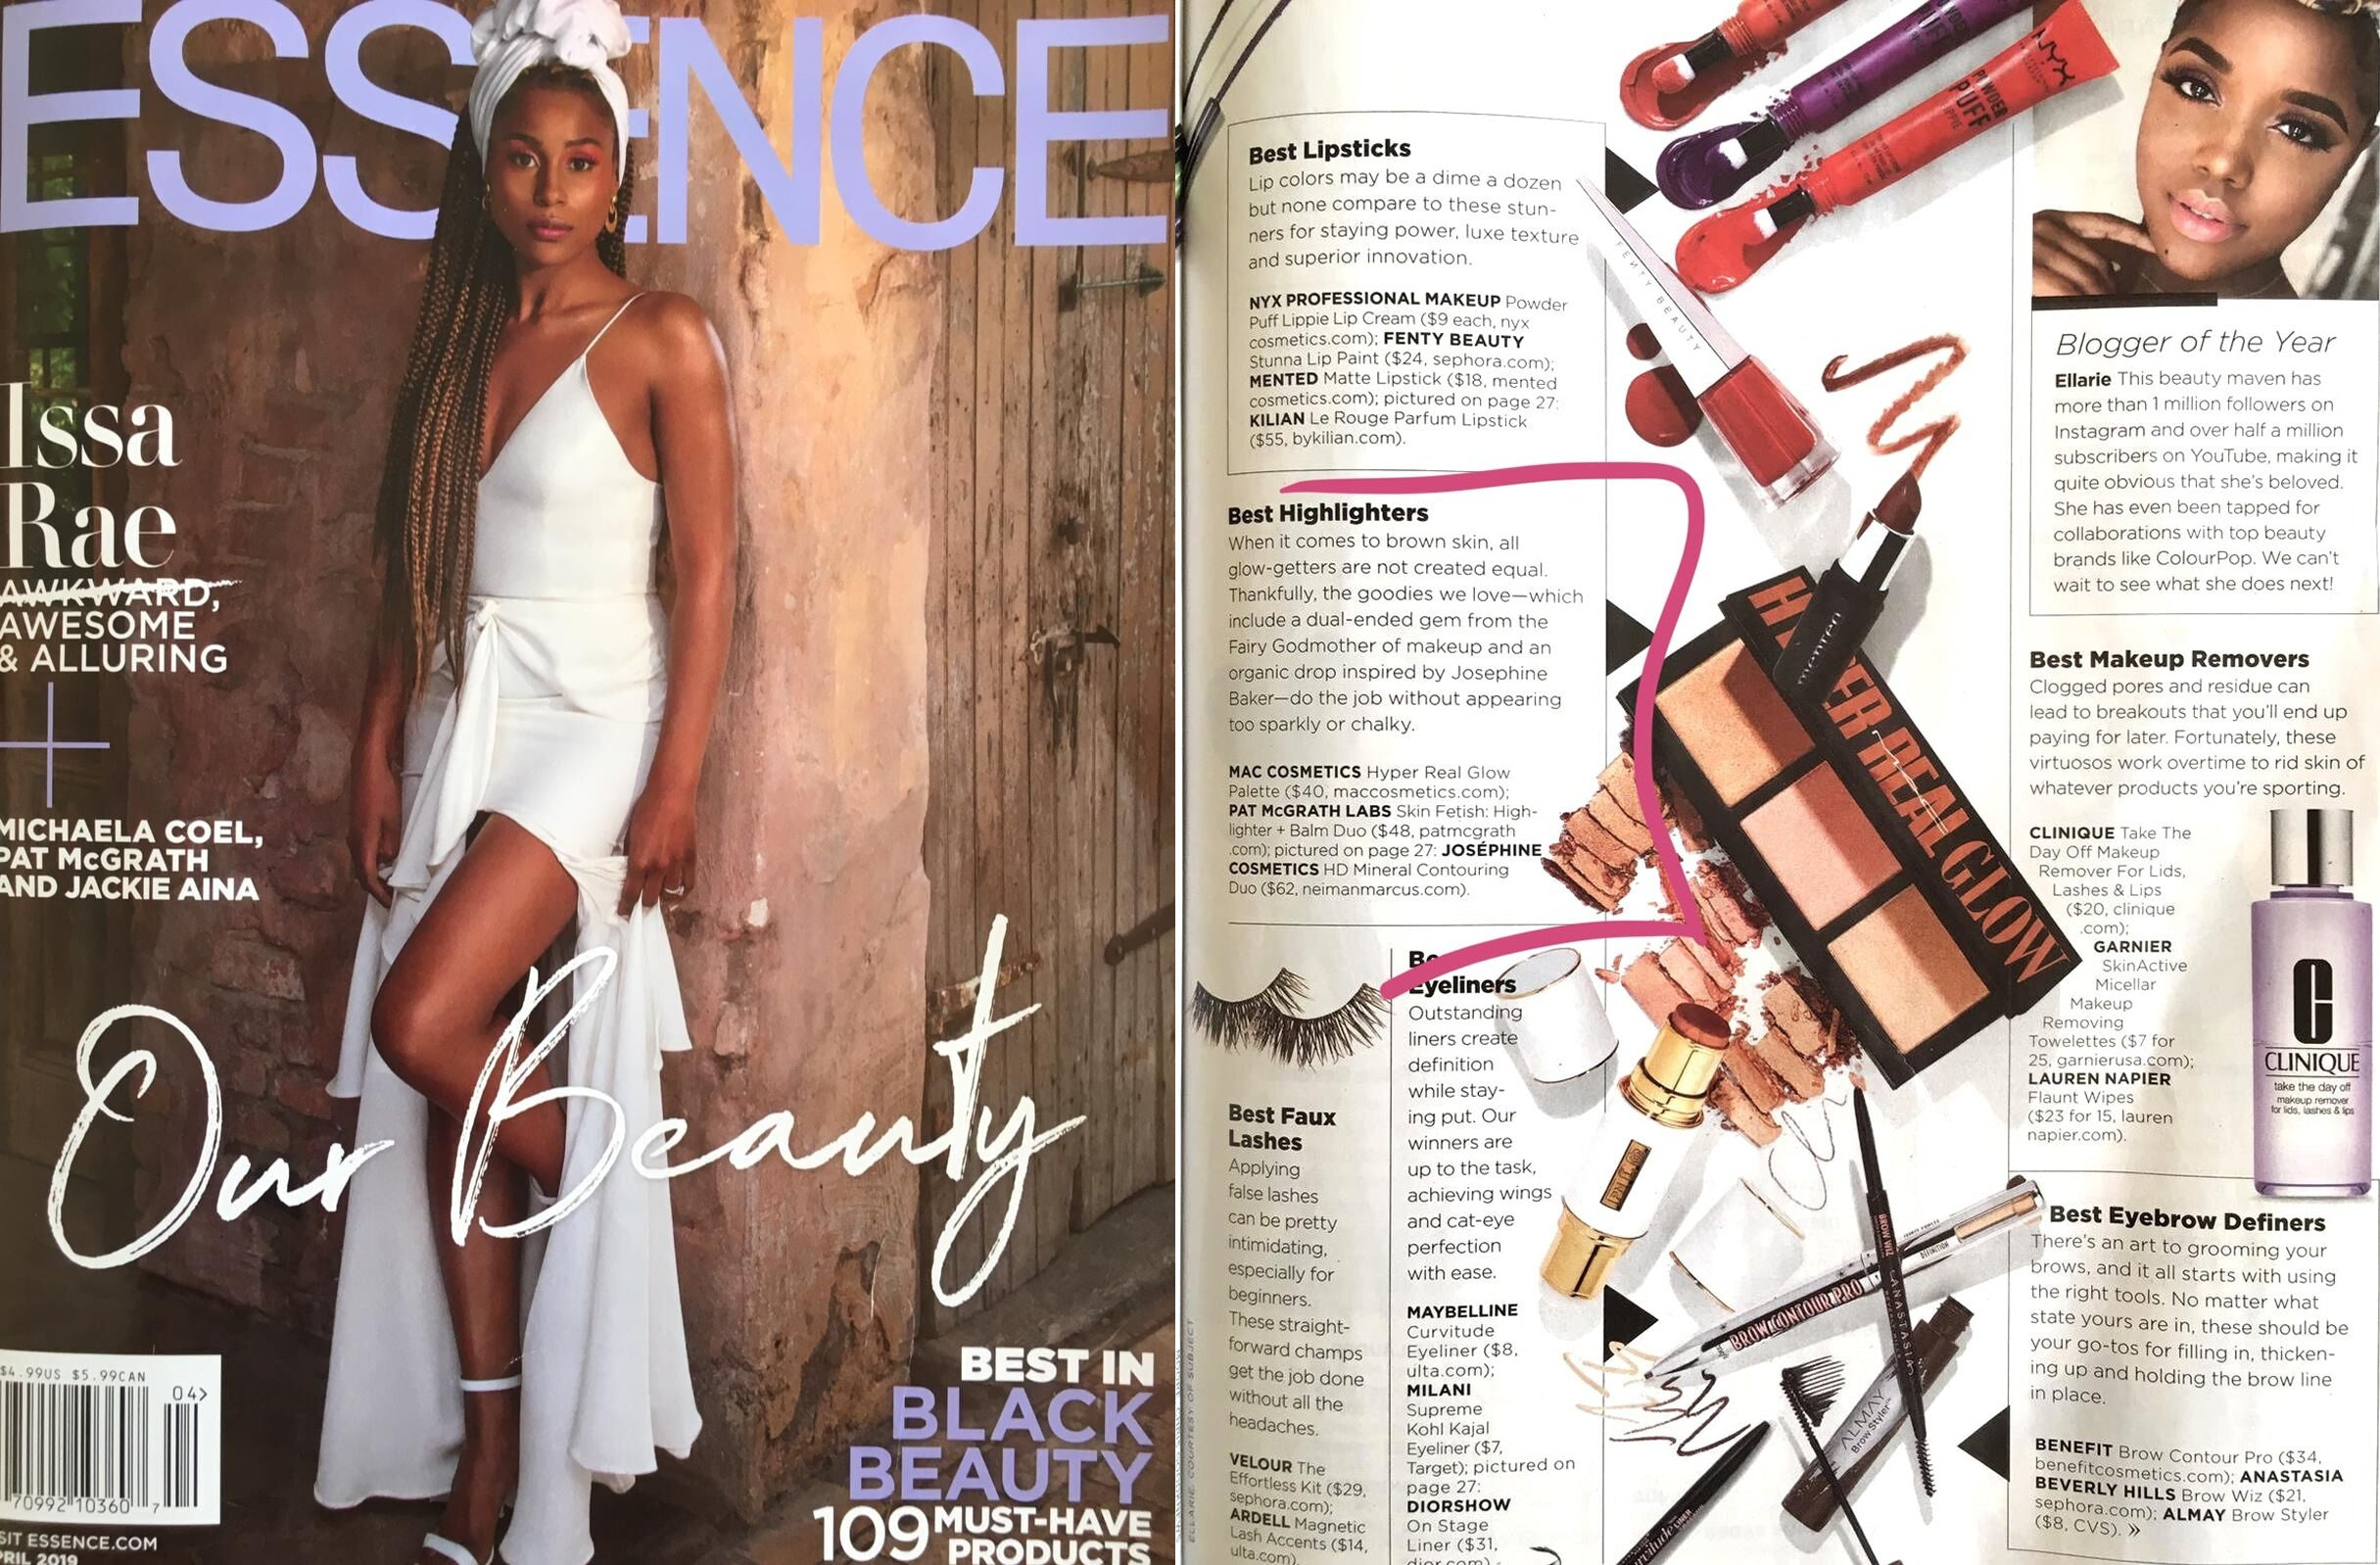 Josephine Cosmetics Essence Magazine Black Beauty Awards Feature